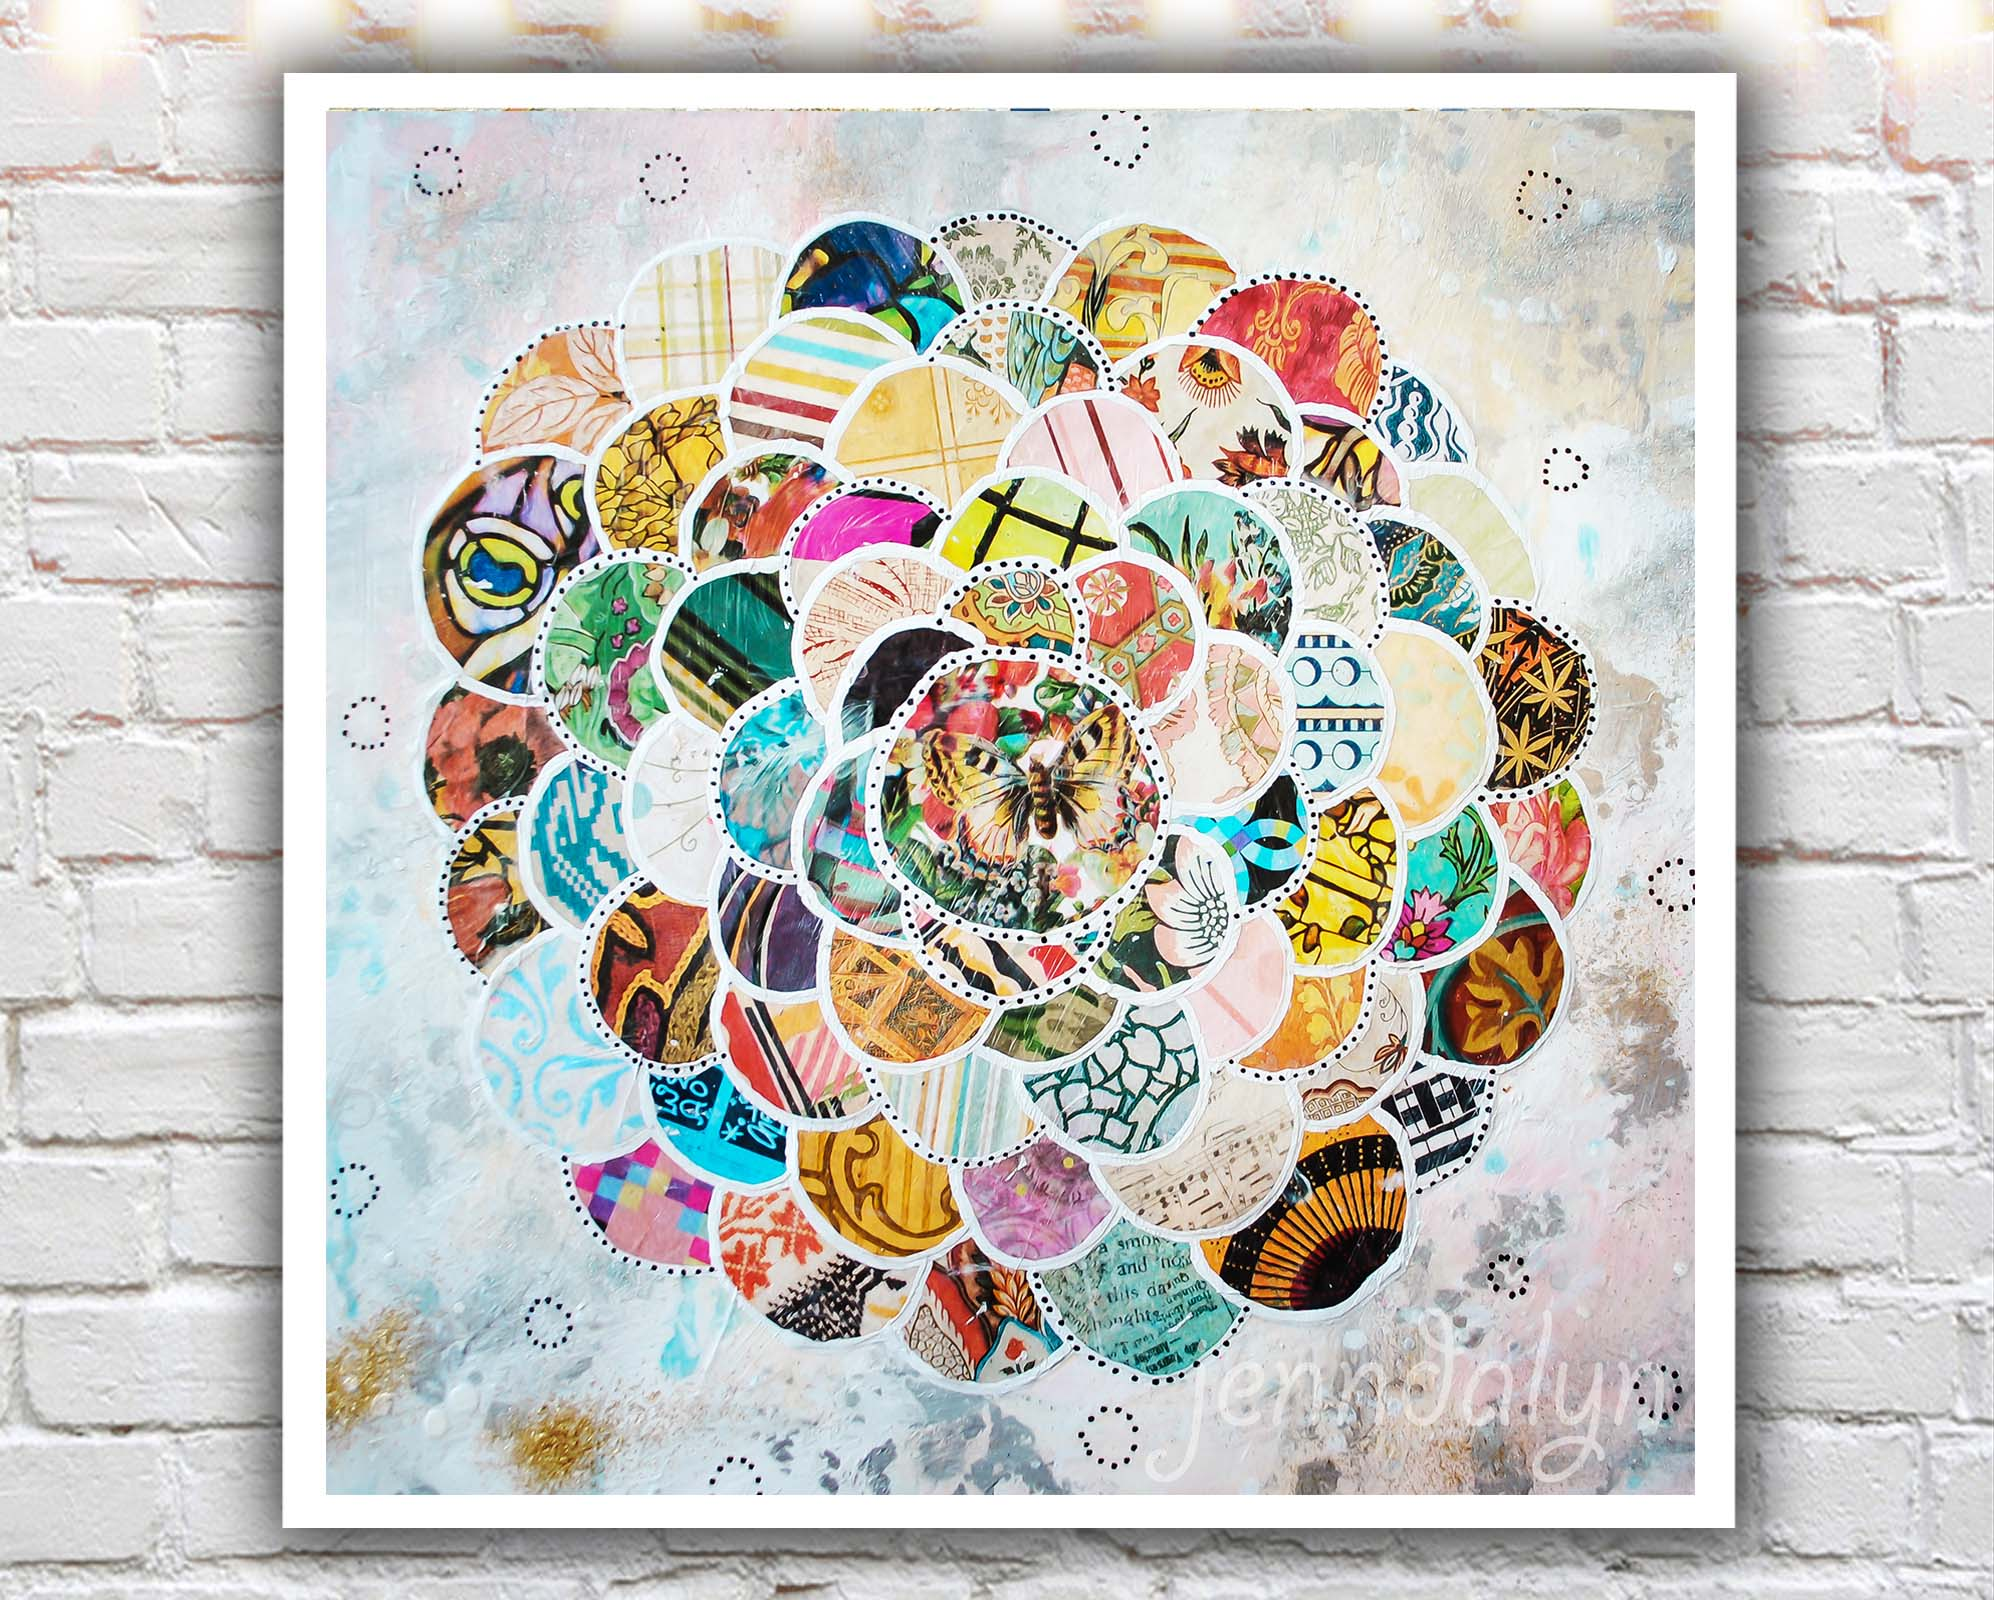 Springbloom 10 X 10 Paper Print Mixed Media Collage Art Collage